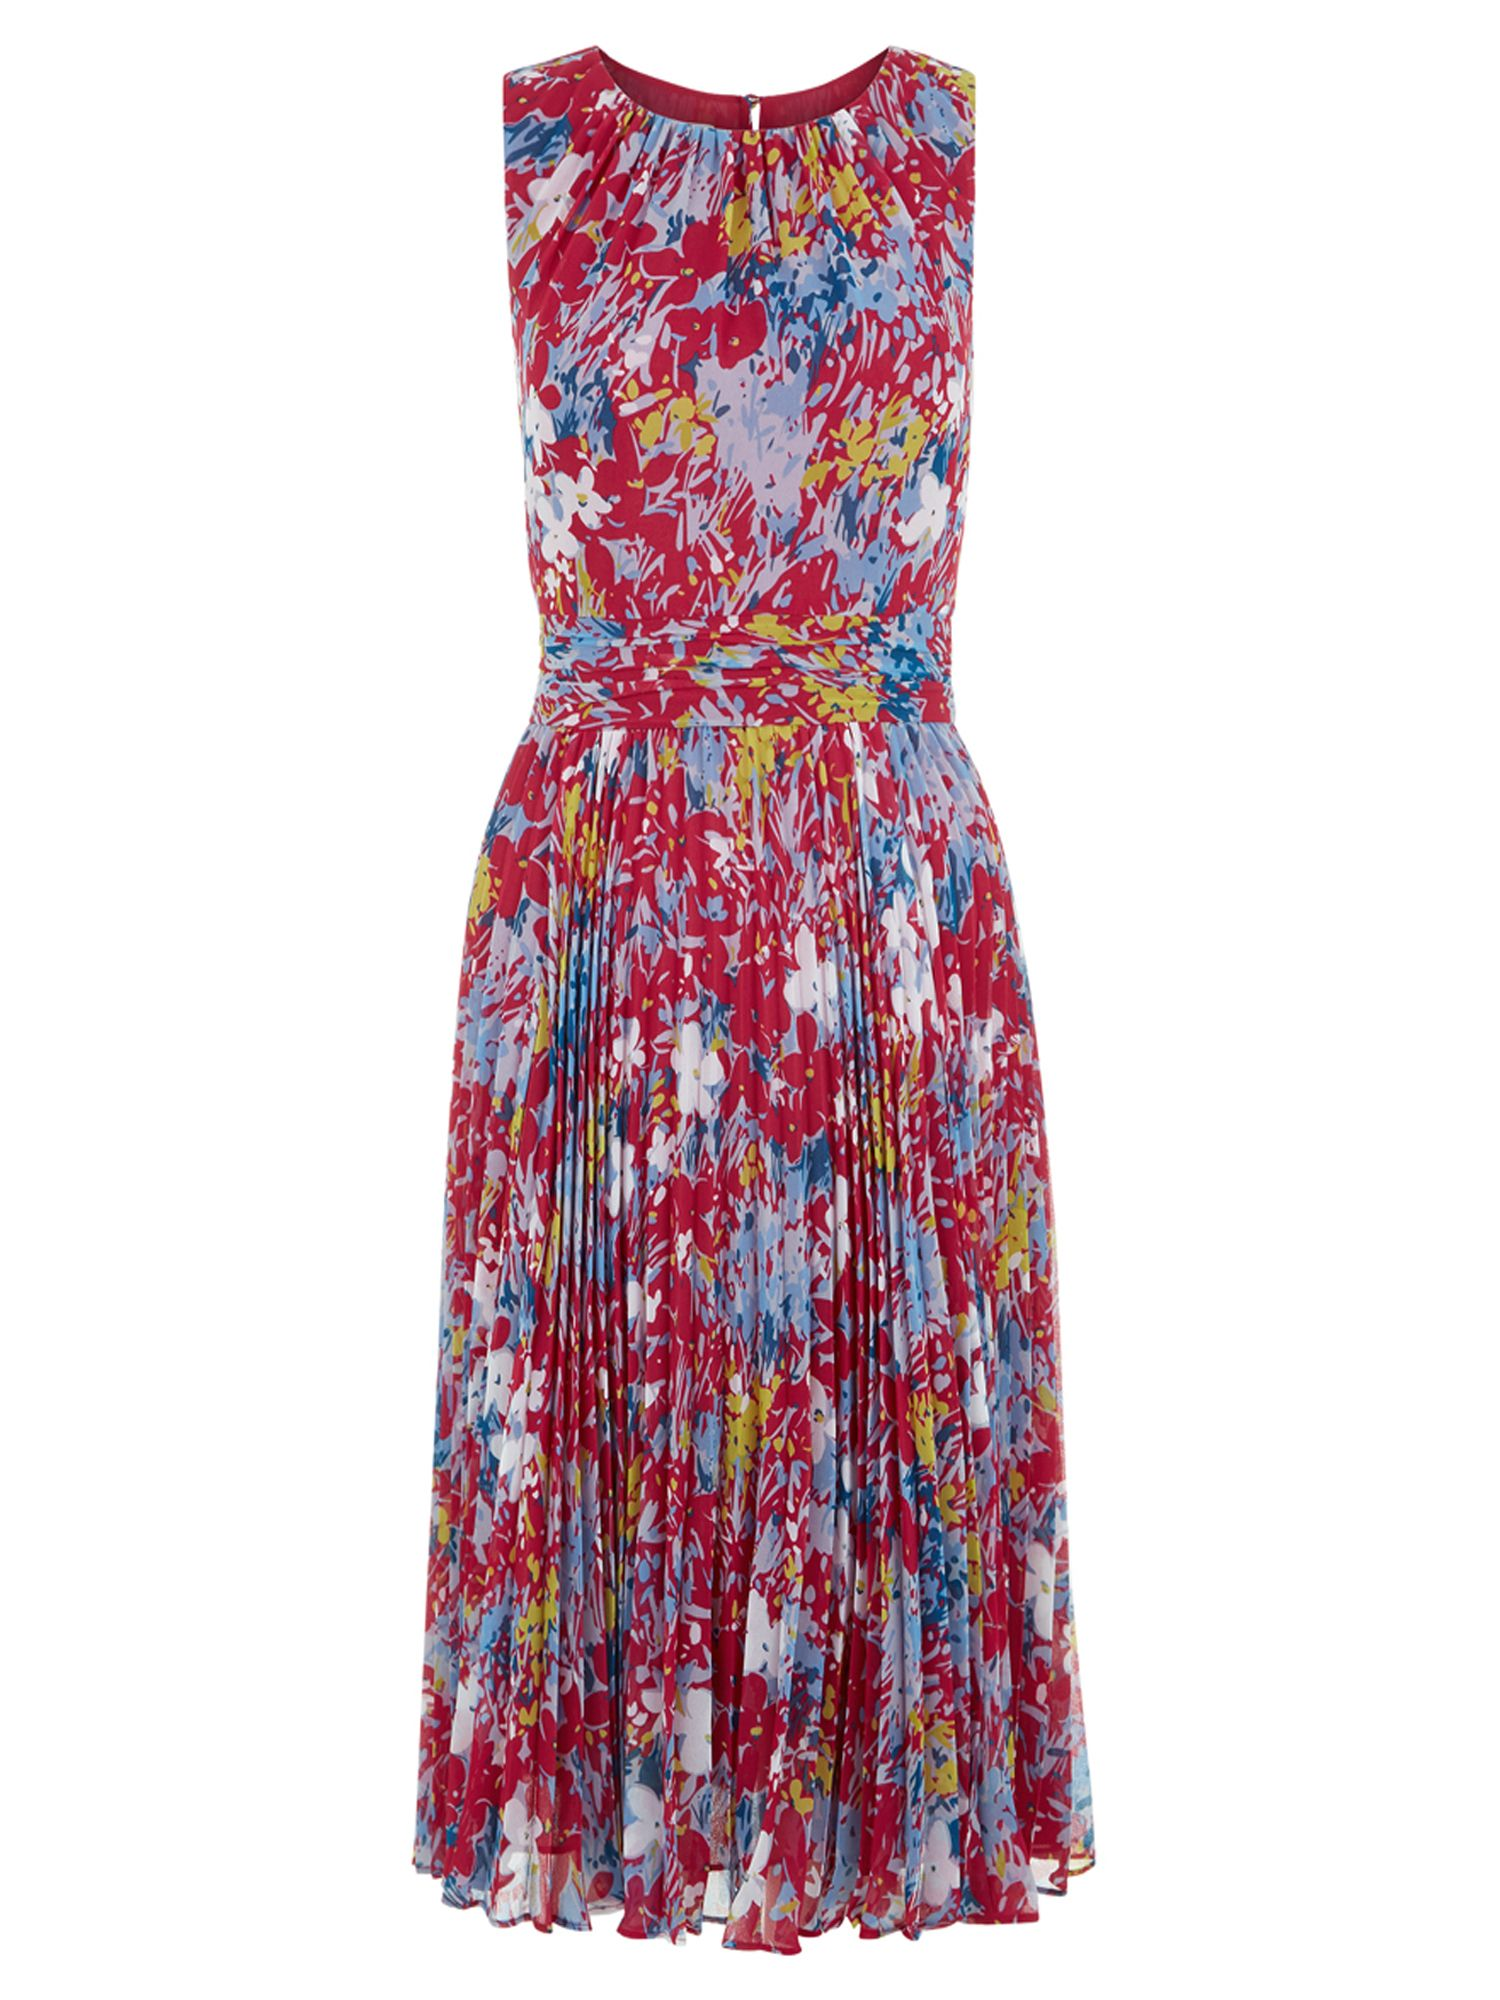 Hobbs Meera Dress, Multi-Coloured